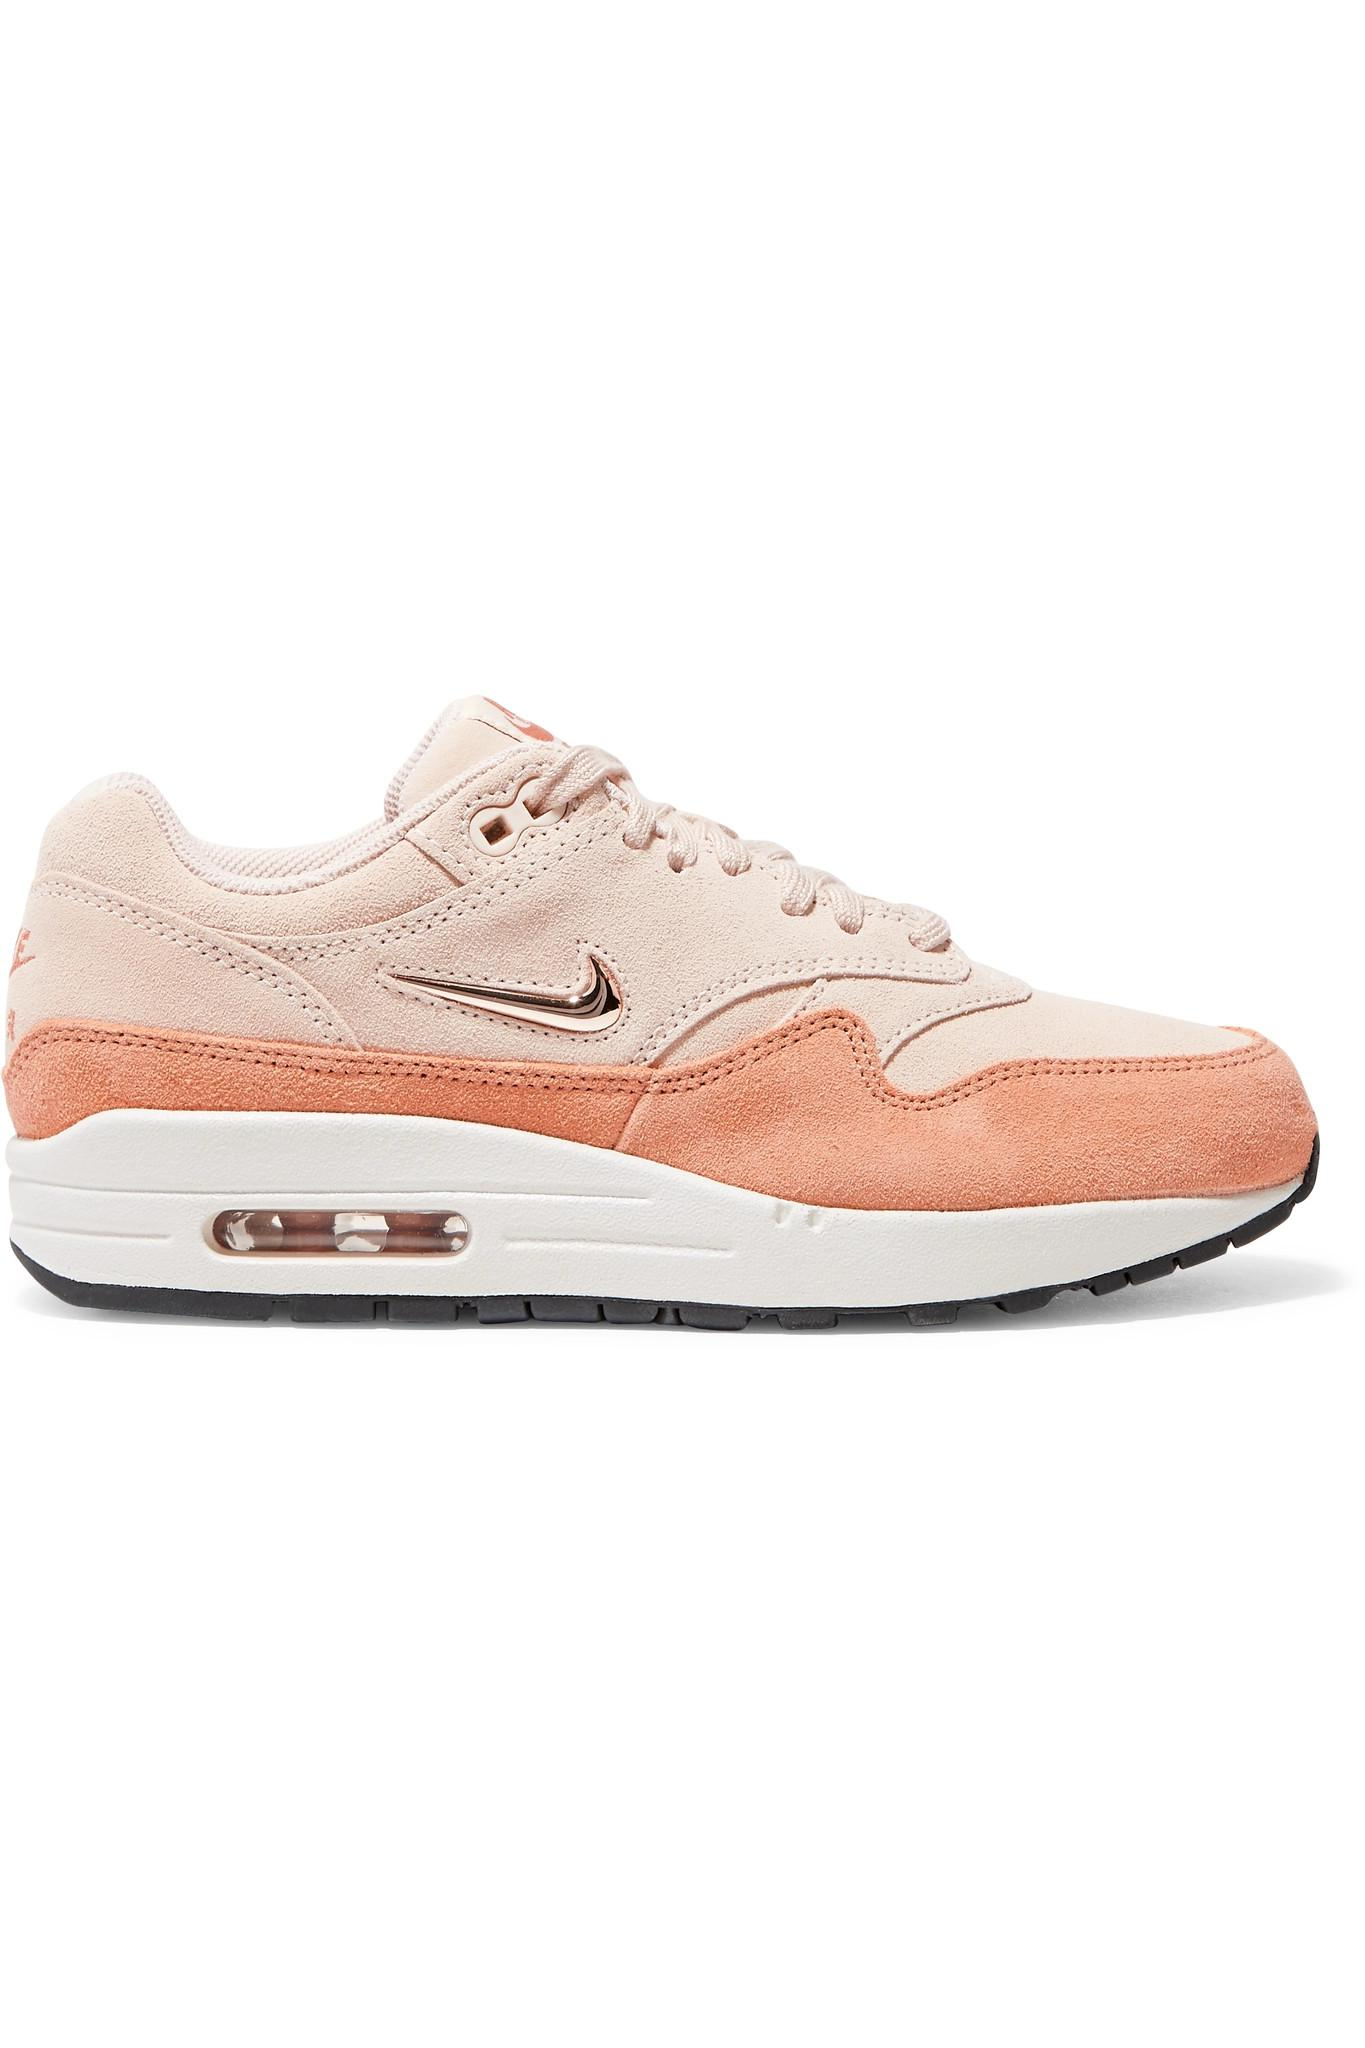 f96a4310c4b Lyst - Nike Air Max 1 Two-tone Suede Sneakers in Natural